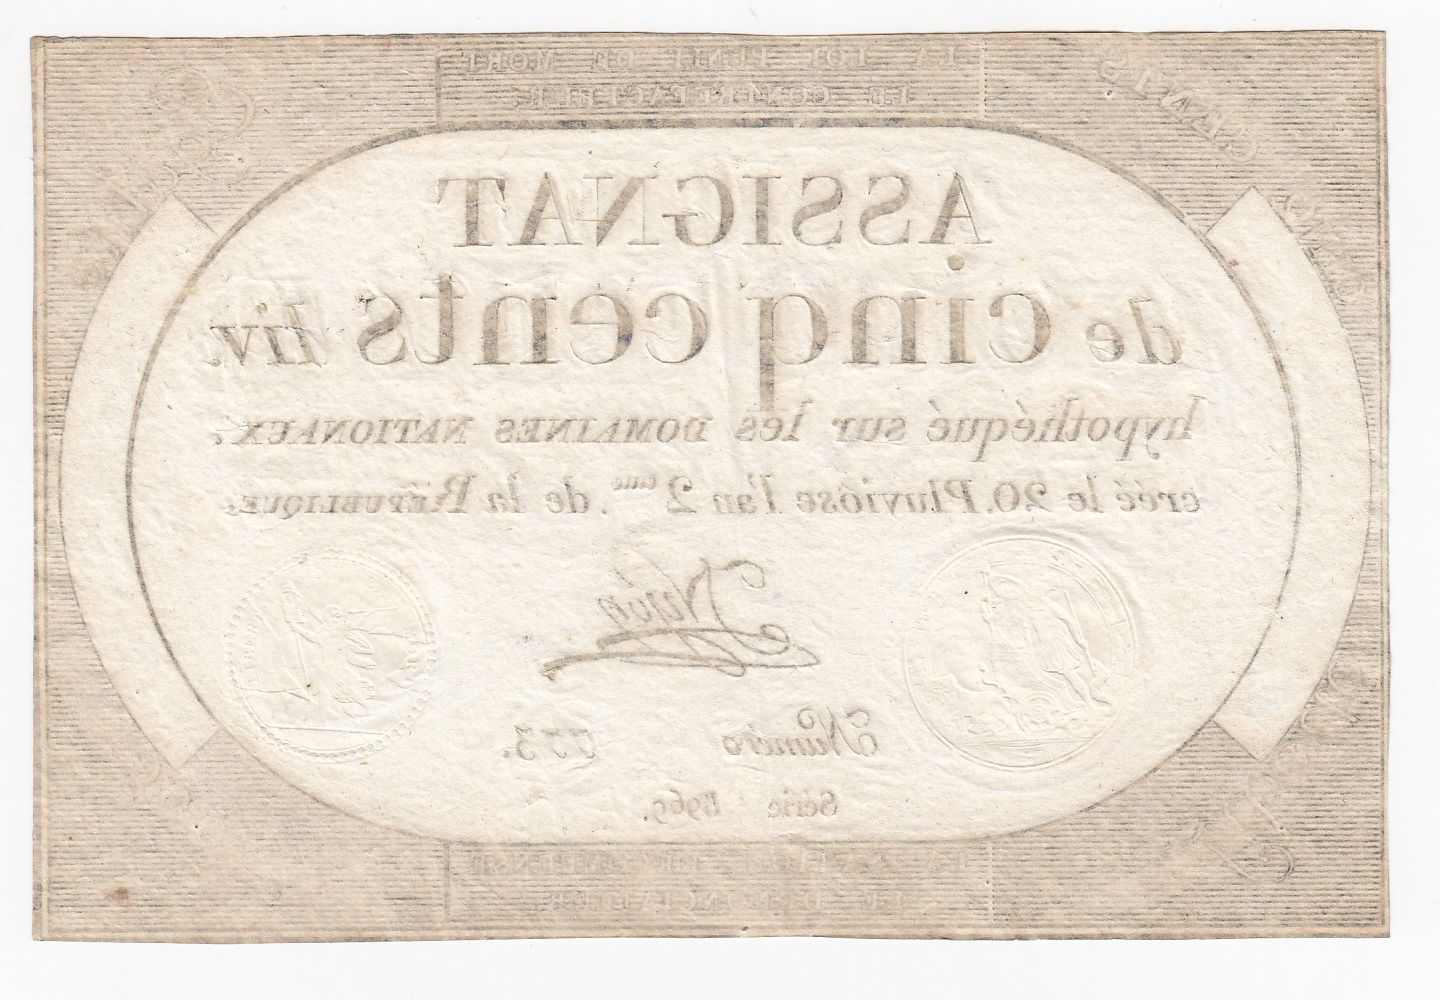 France 500 Livres 20 Pluviose An II (8.2.1794) - Sign. Nyon